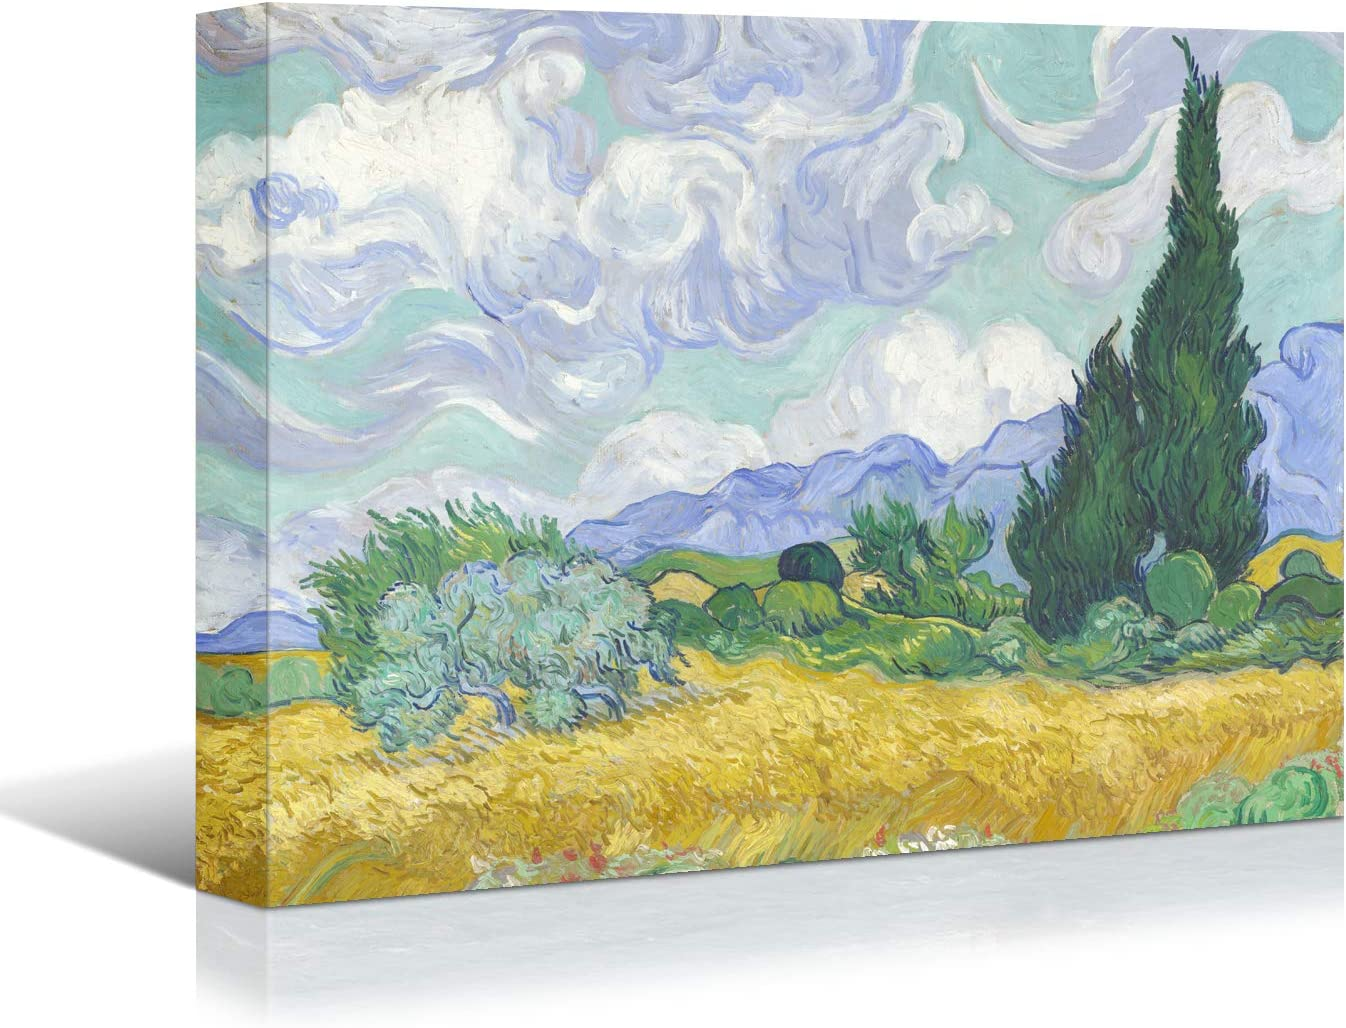 Looife Wheat Field Canvas Wall Art Decor, 16x12 Inch Van Gogh Famous Oil Painting Picture Reproduction Prints Gallery Wrapped Abstract Landscape Room Decoration Ready to Hang